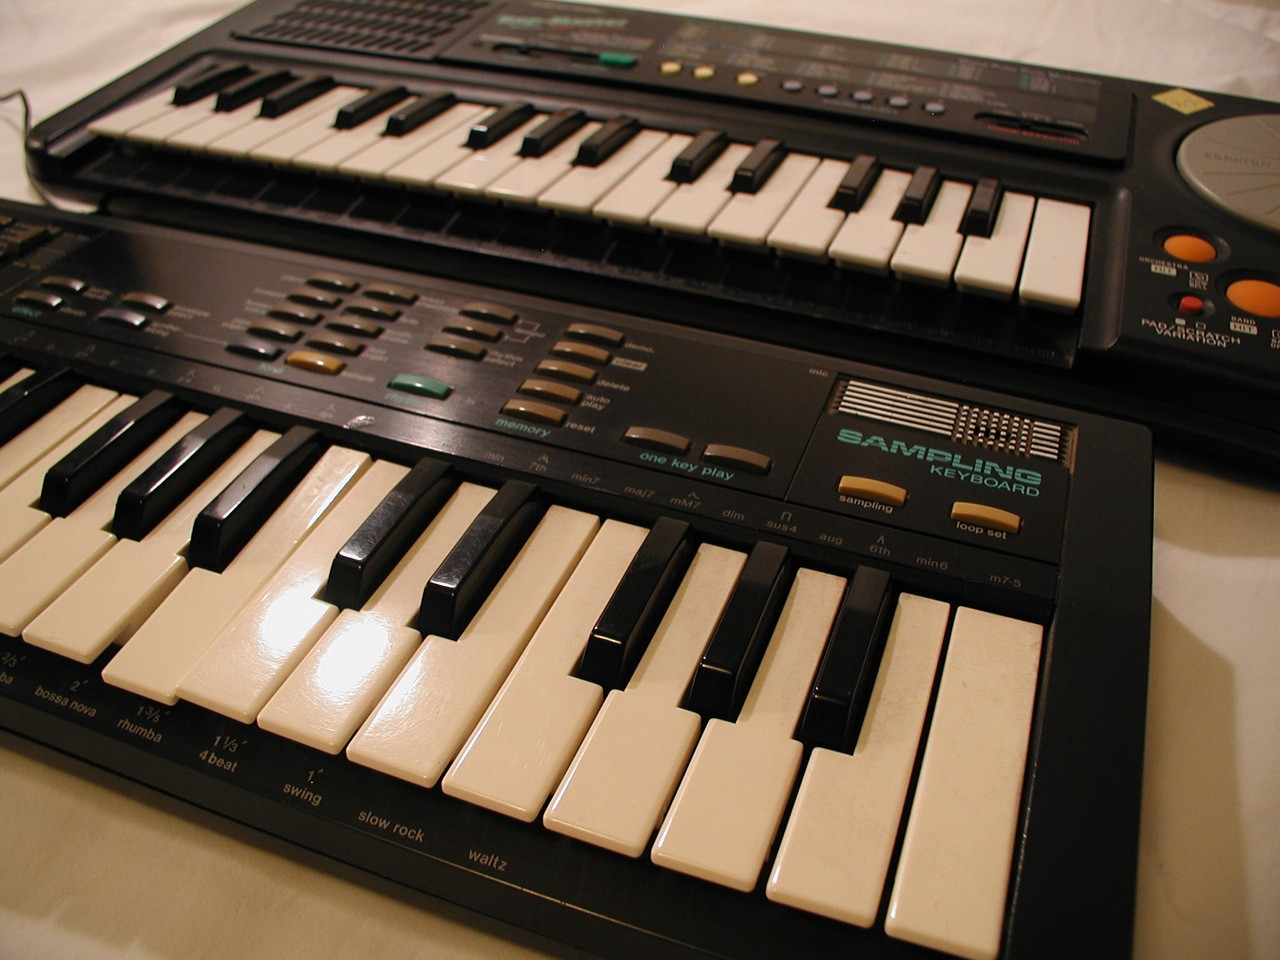 Photo of vintage mini-keyboards, forefronting the Casio SK-1 sampling keyboard of the 1980s